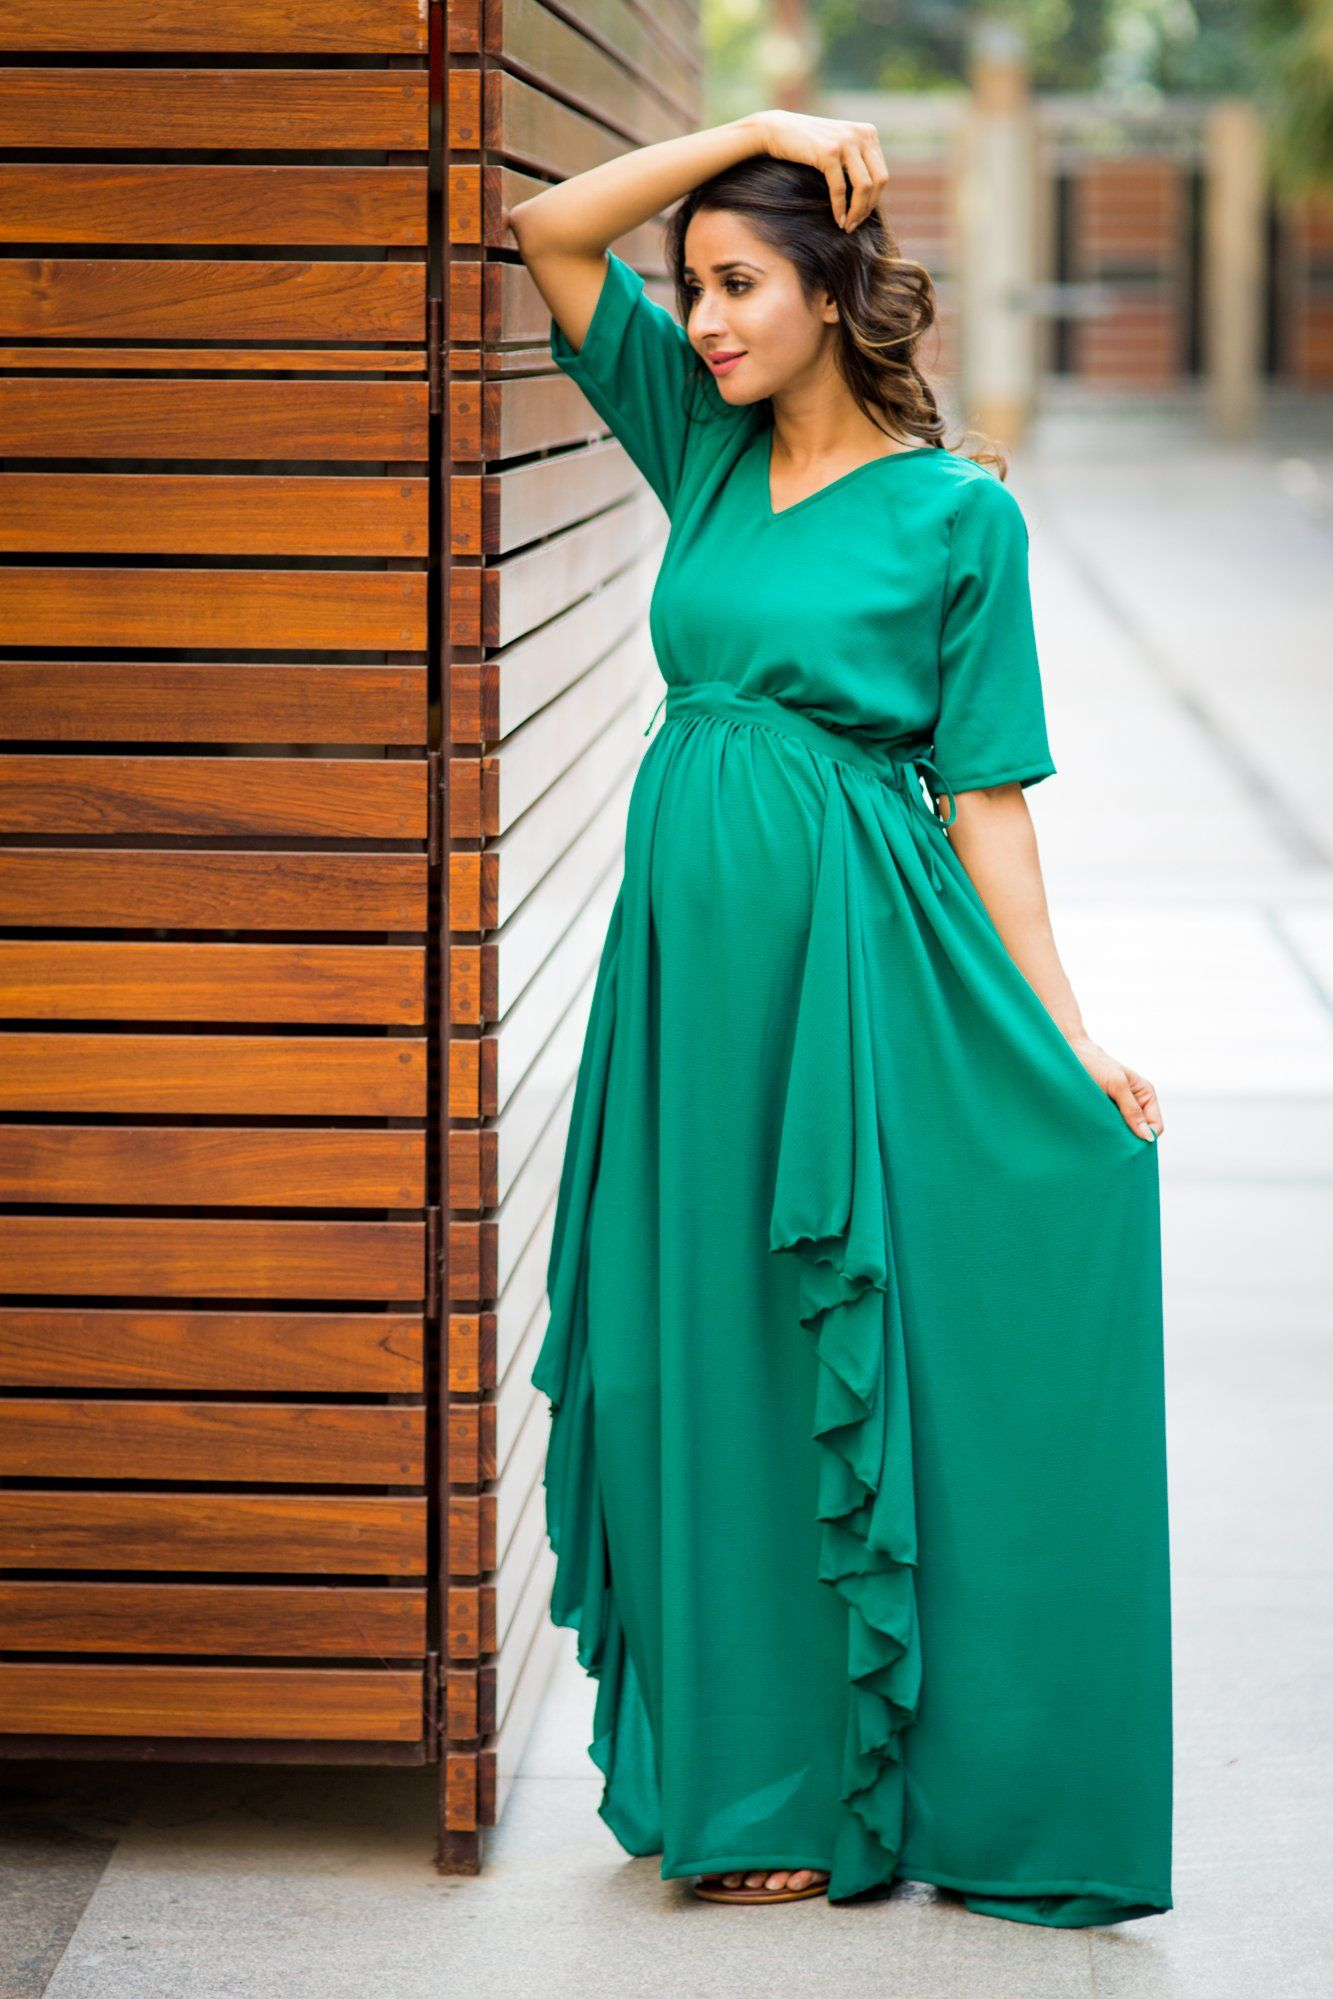 Buy online momzjoy maternity dresses pregnancy wear nursing clothes luxe forest green bubble georgette maternity dress ombrellifo Images